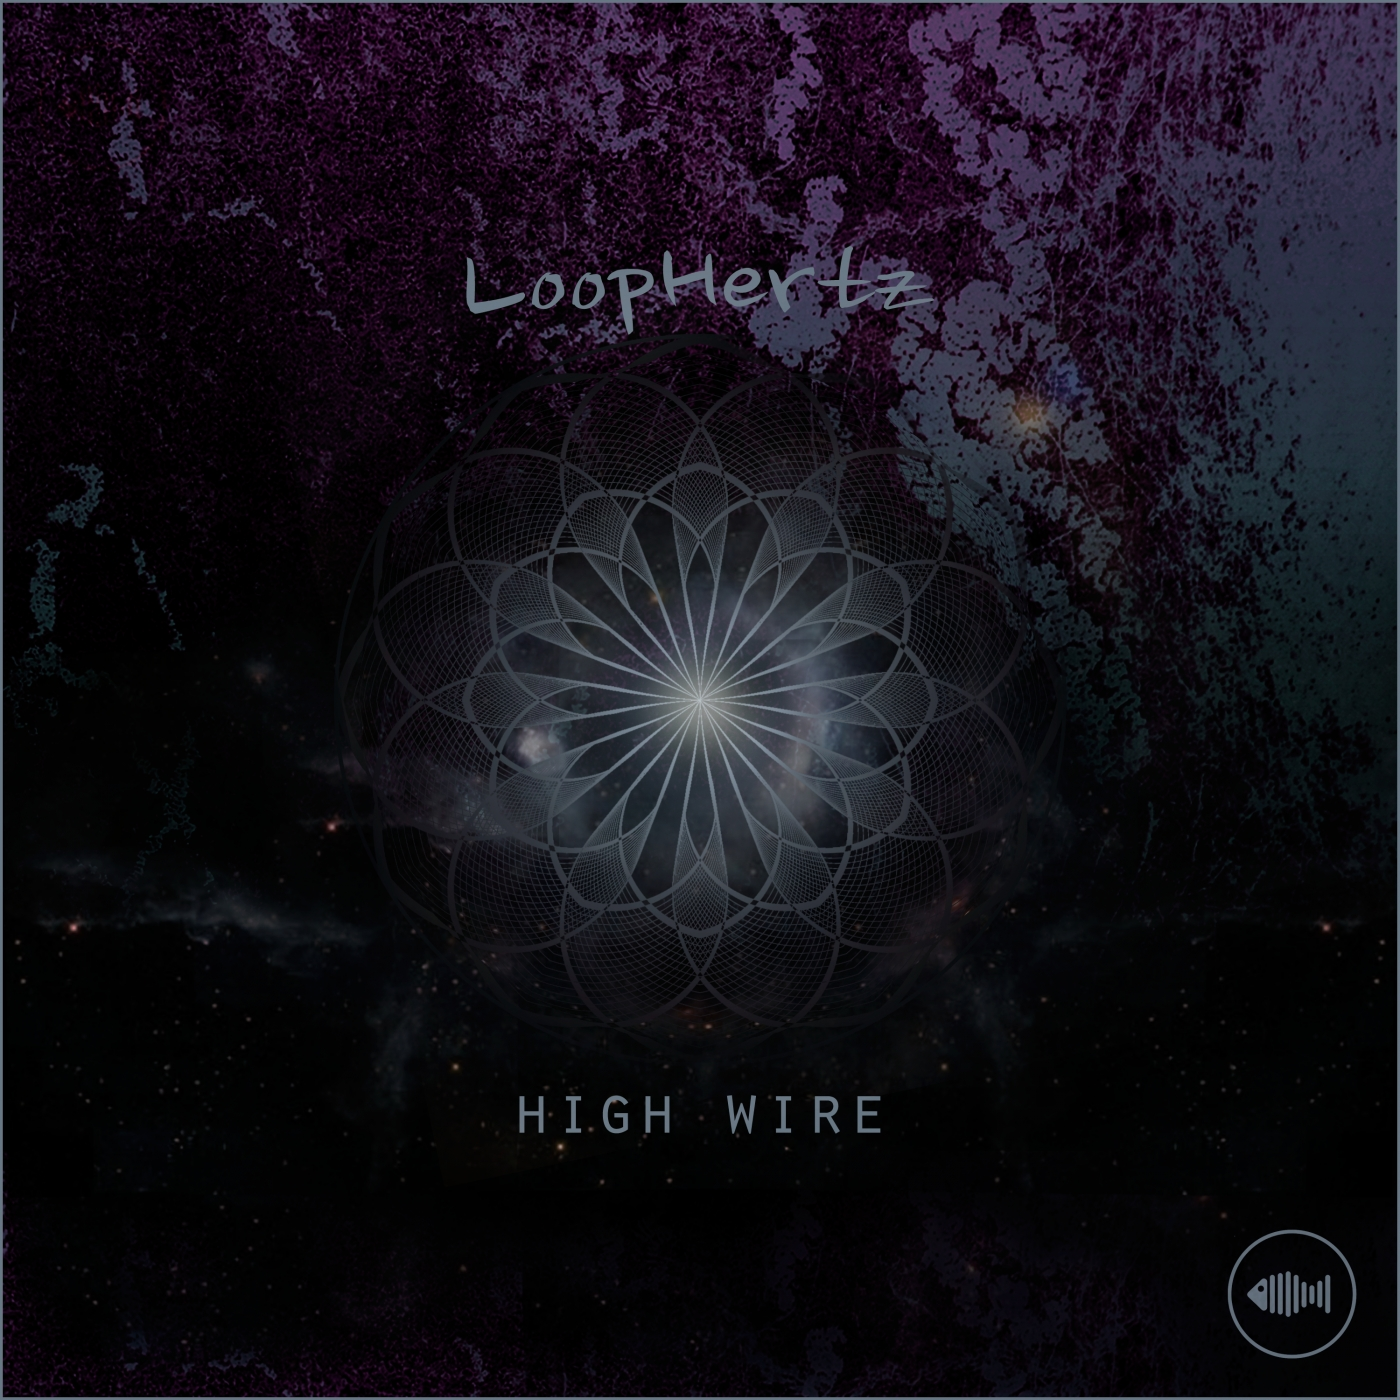 BTR023 - Loophertz - High Wire (Original Mix)